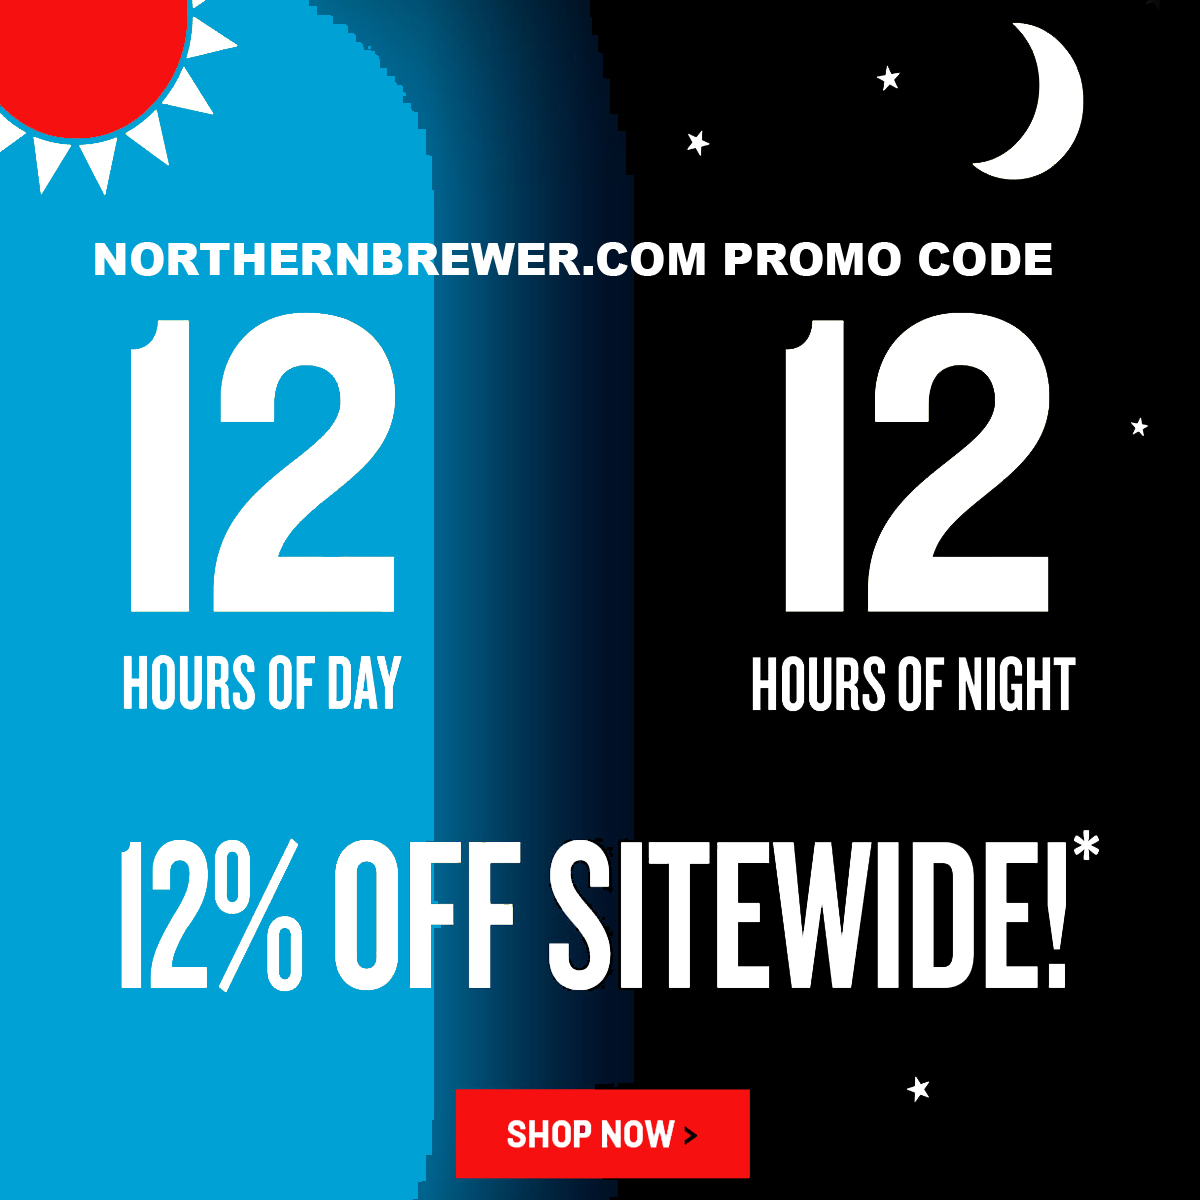 Save 12% Site Wide at Northern Brewer With This NorthernBrewer.com Promo Code Coupon Code